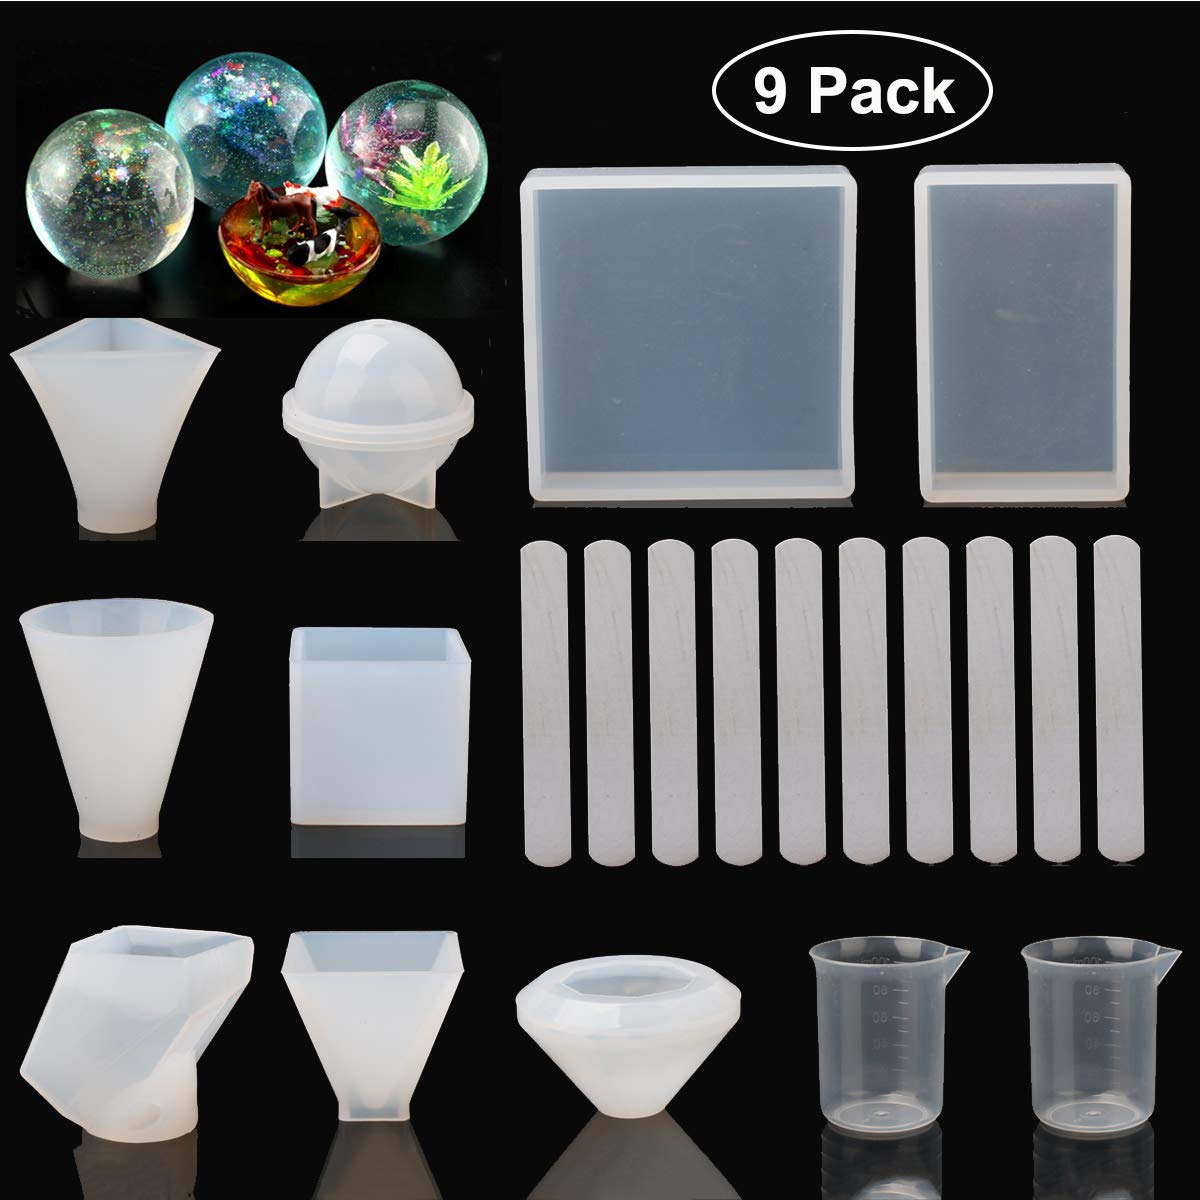 9 Pack Resin Molds,Silicone Jewelry Molds for Casting Resin, Soap,  Wax,Epoxy, Cube/Pyramid/Sphere/Diamond/Stone/Cone Resin Mold with Measuring  Cups &